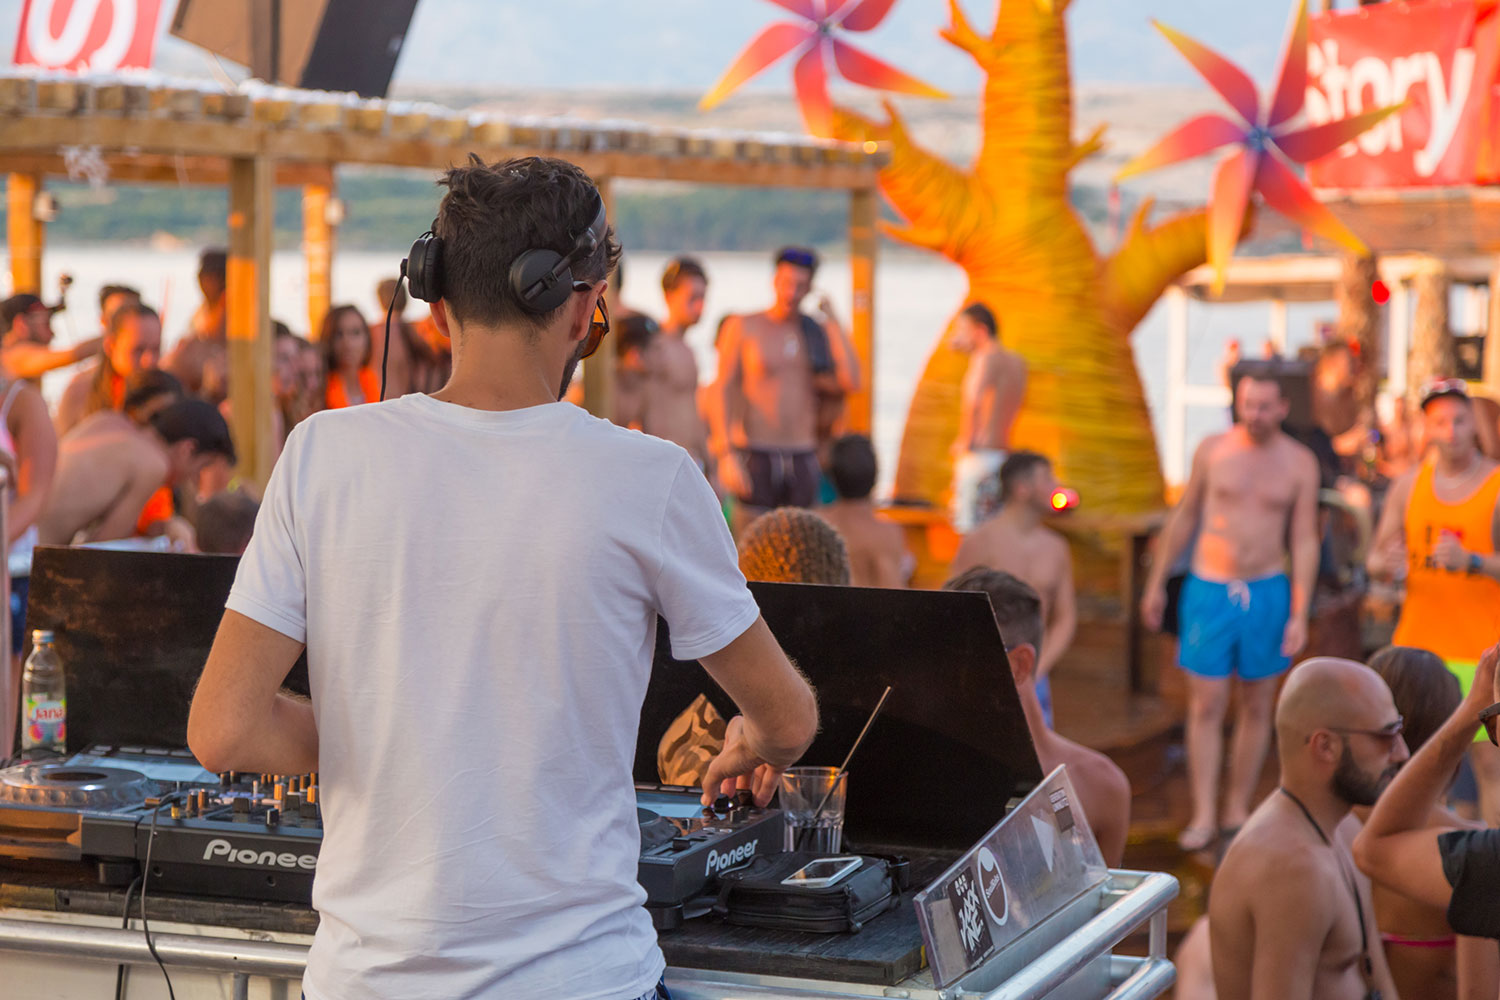 How a Pool Party Put One DJ's Business Under Water